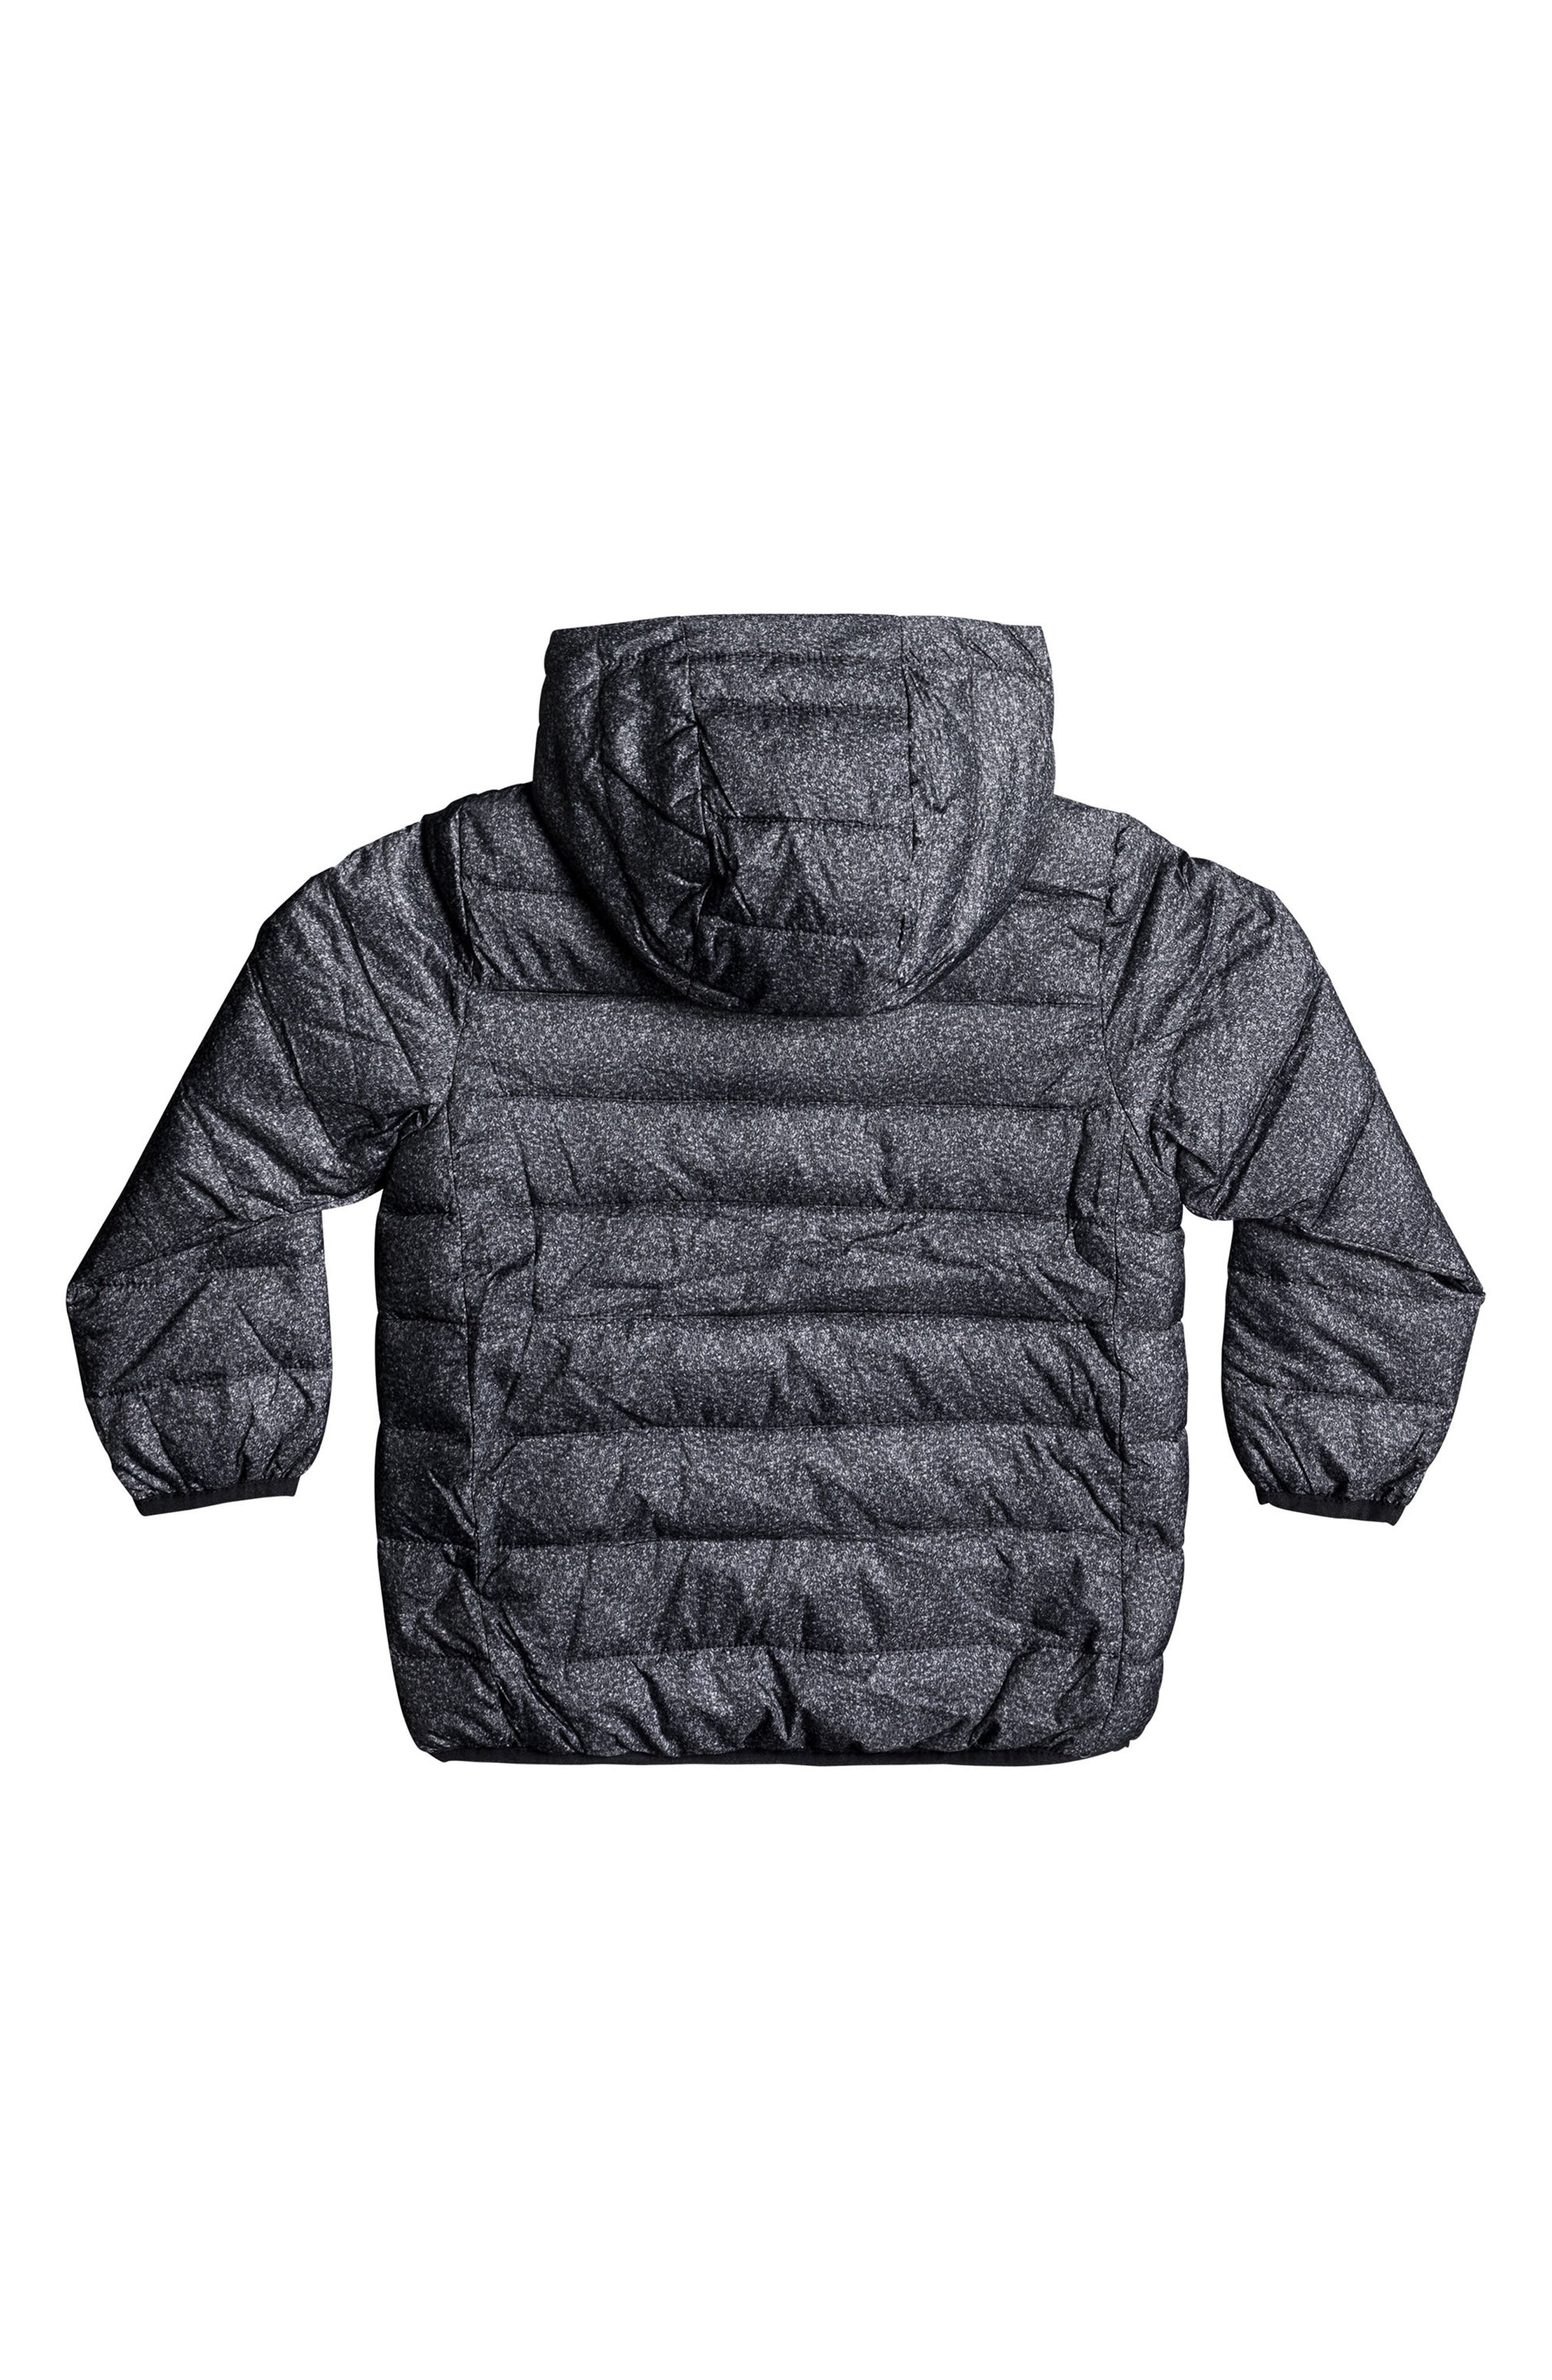 Quicksilver Scaly Water-Resistant Hooded Puffer Jacket,                             Alternate thumbnail 2, color,                             020